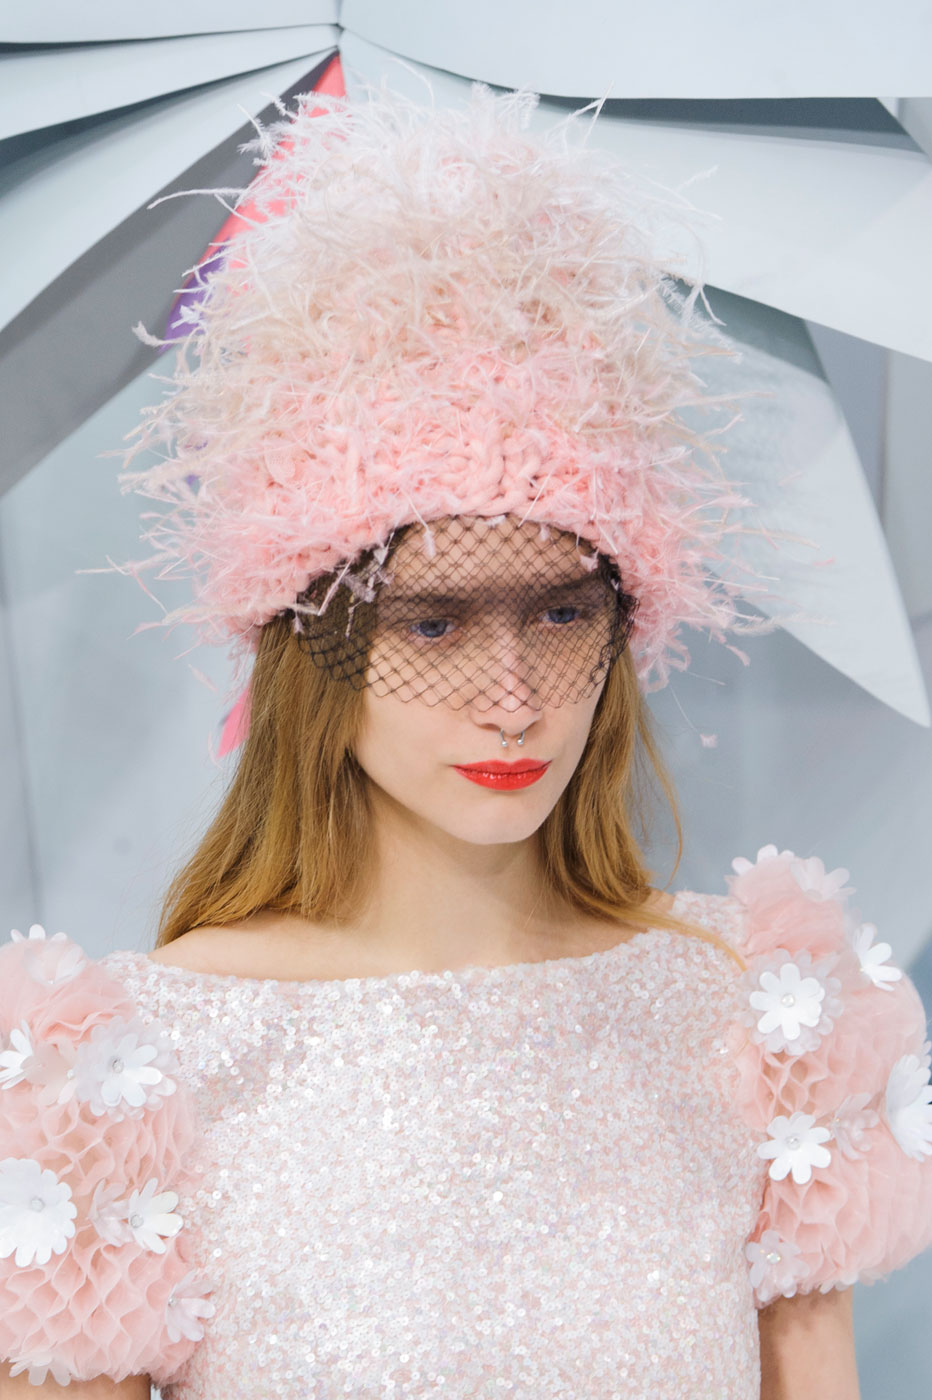 Chanel-fashion-runway-show-close-ups-haute-couture-paris-spring-summer-2015-the-impression-144